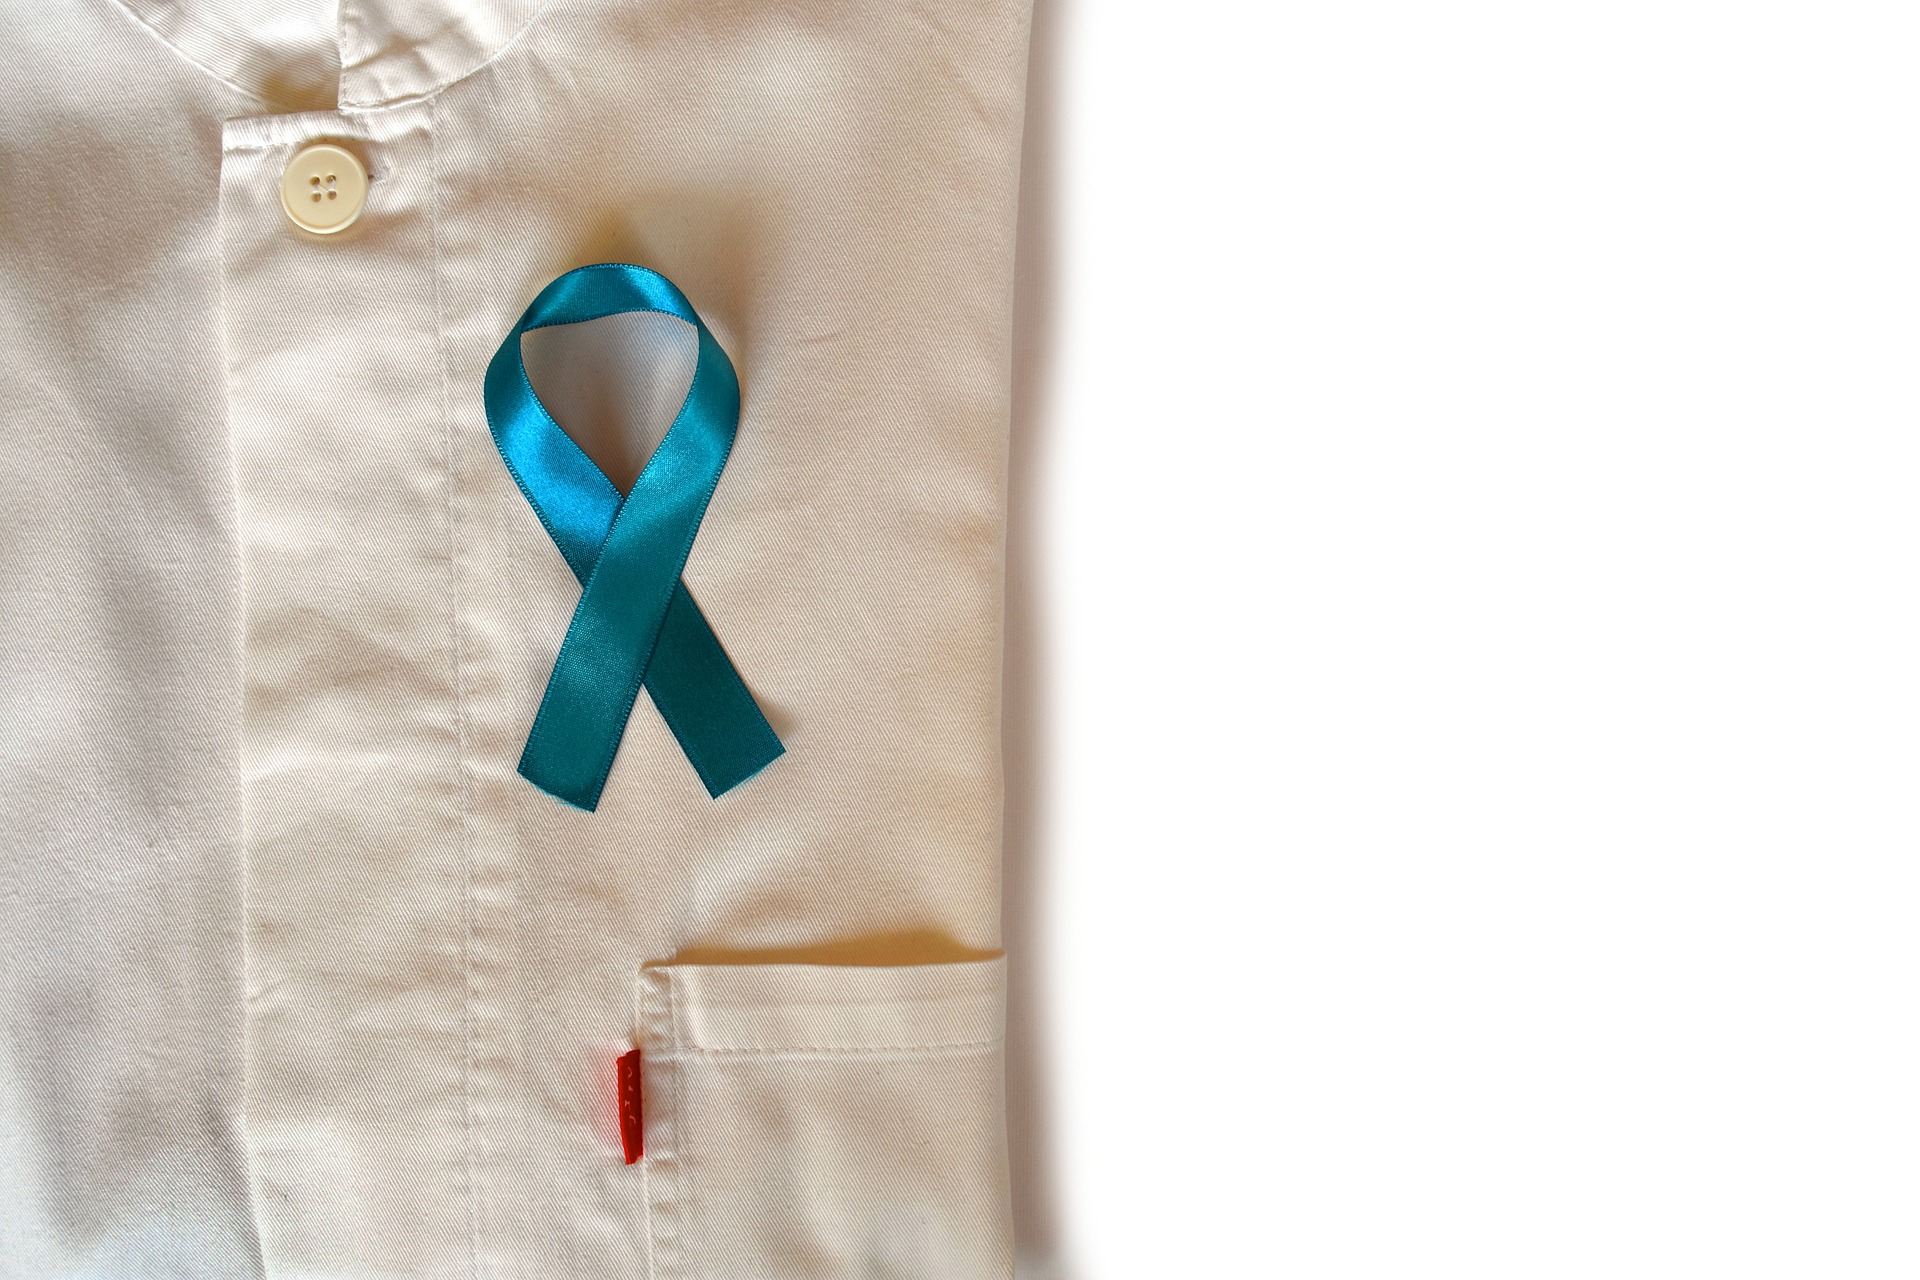 How I Beat Prostate Cancer While Maintaining My Quality of Life